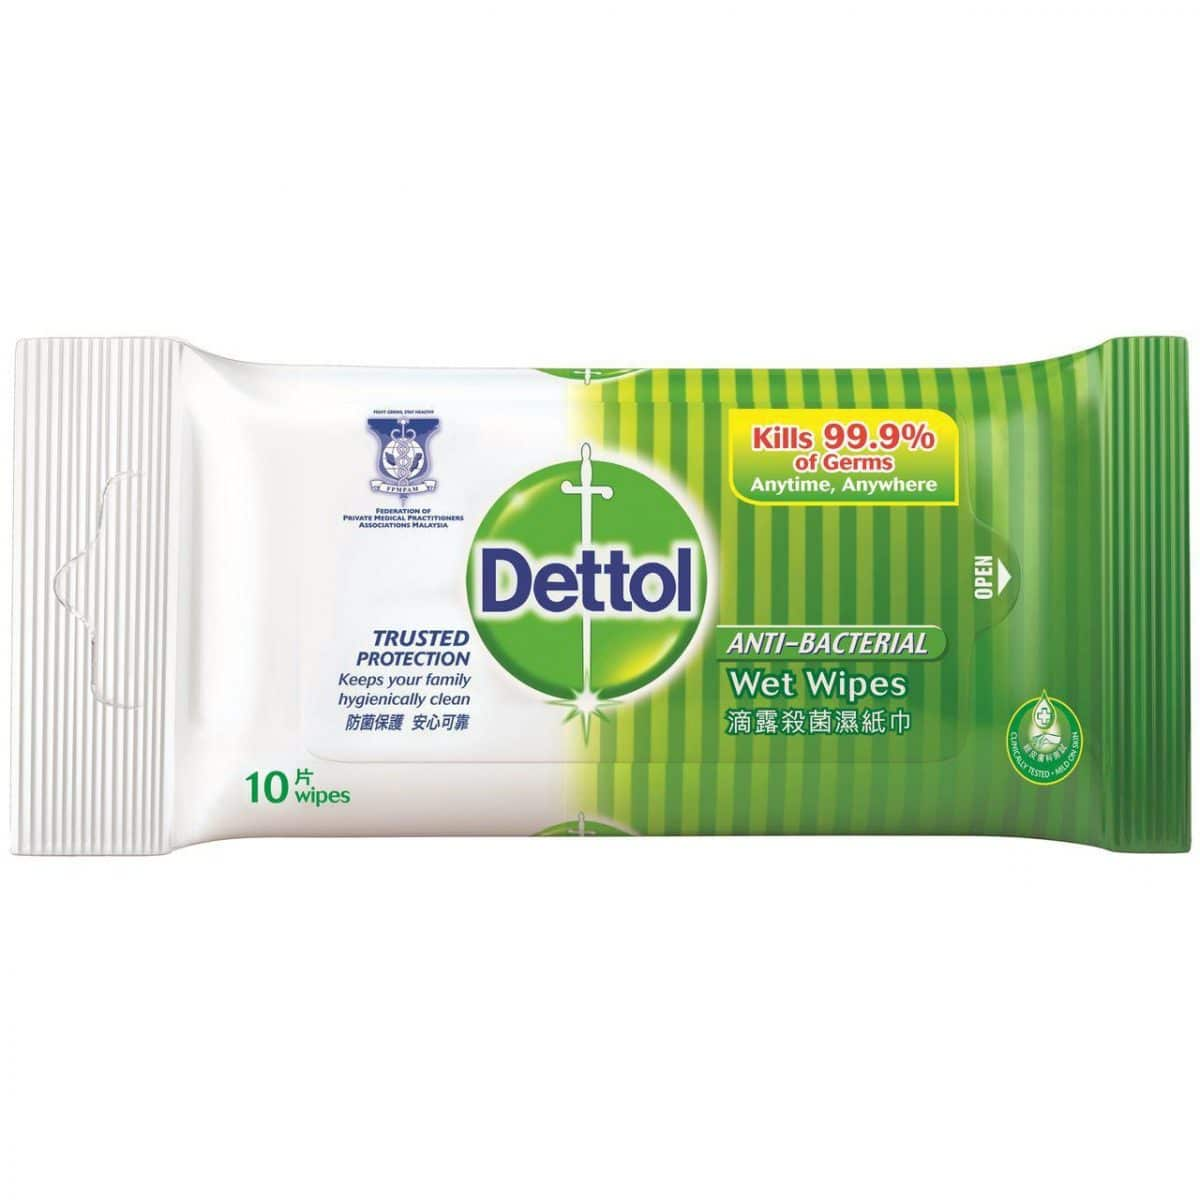 Dettol Anti-Bacterial Wet Wipes for COVID-19 disinfection containing benzalkonium chloride